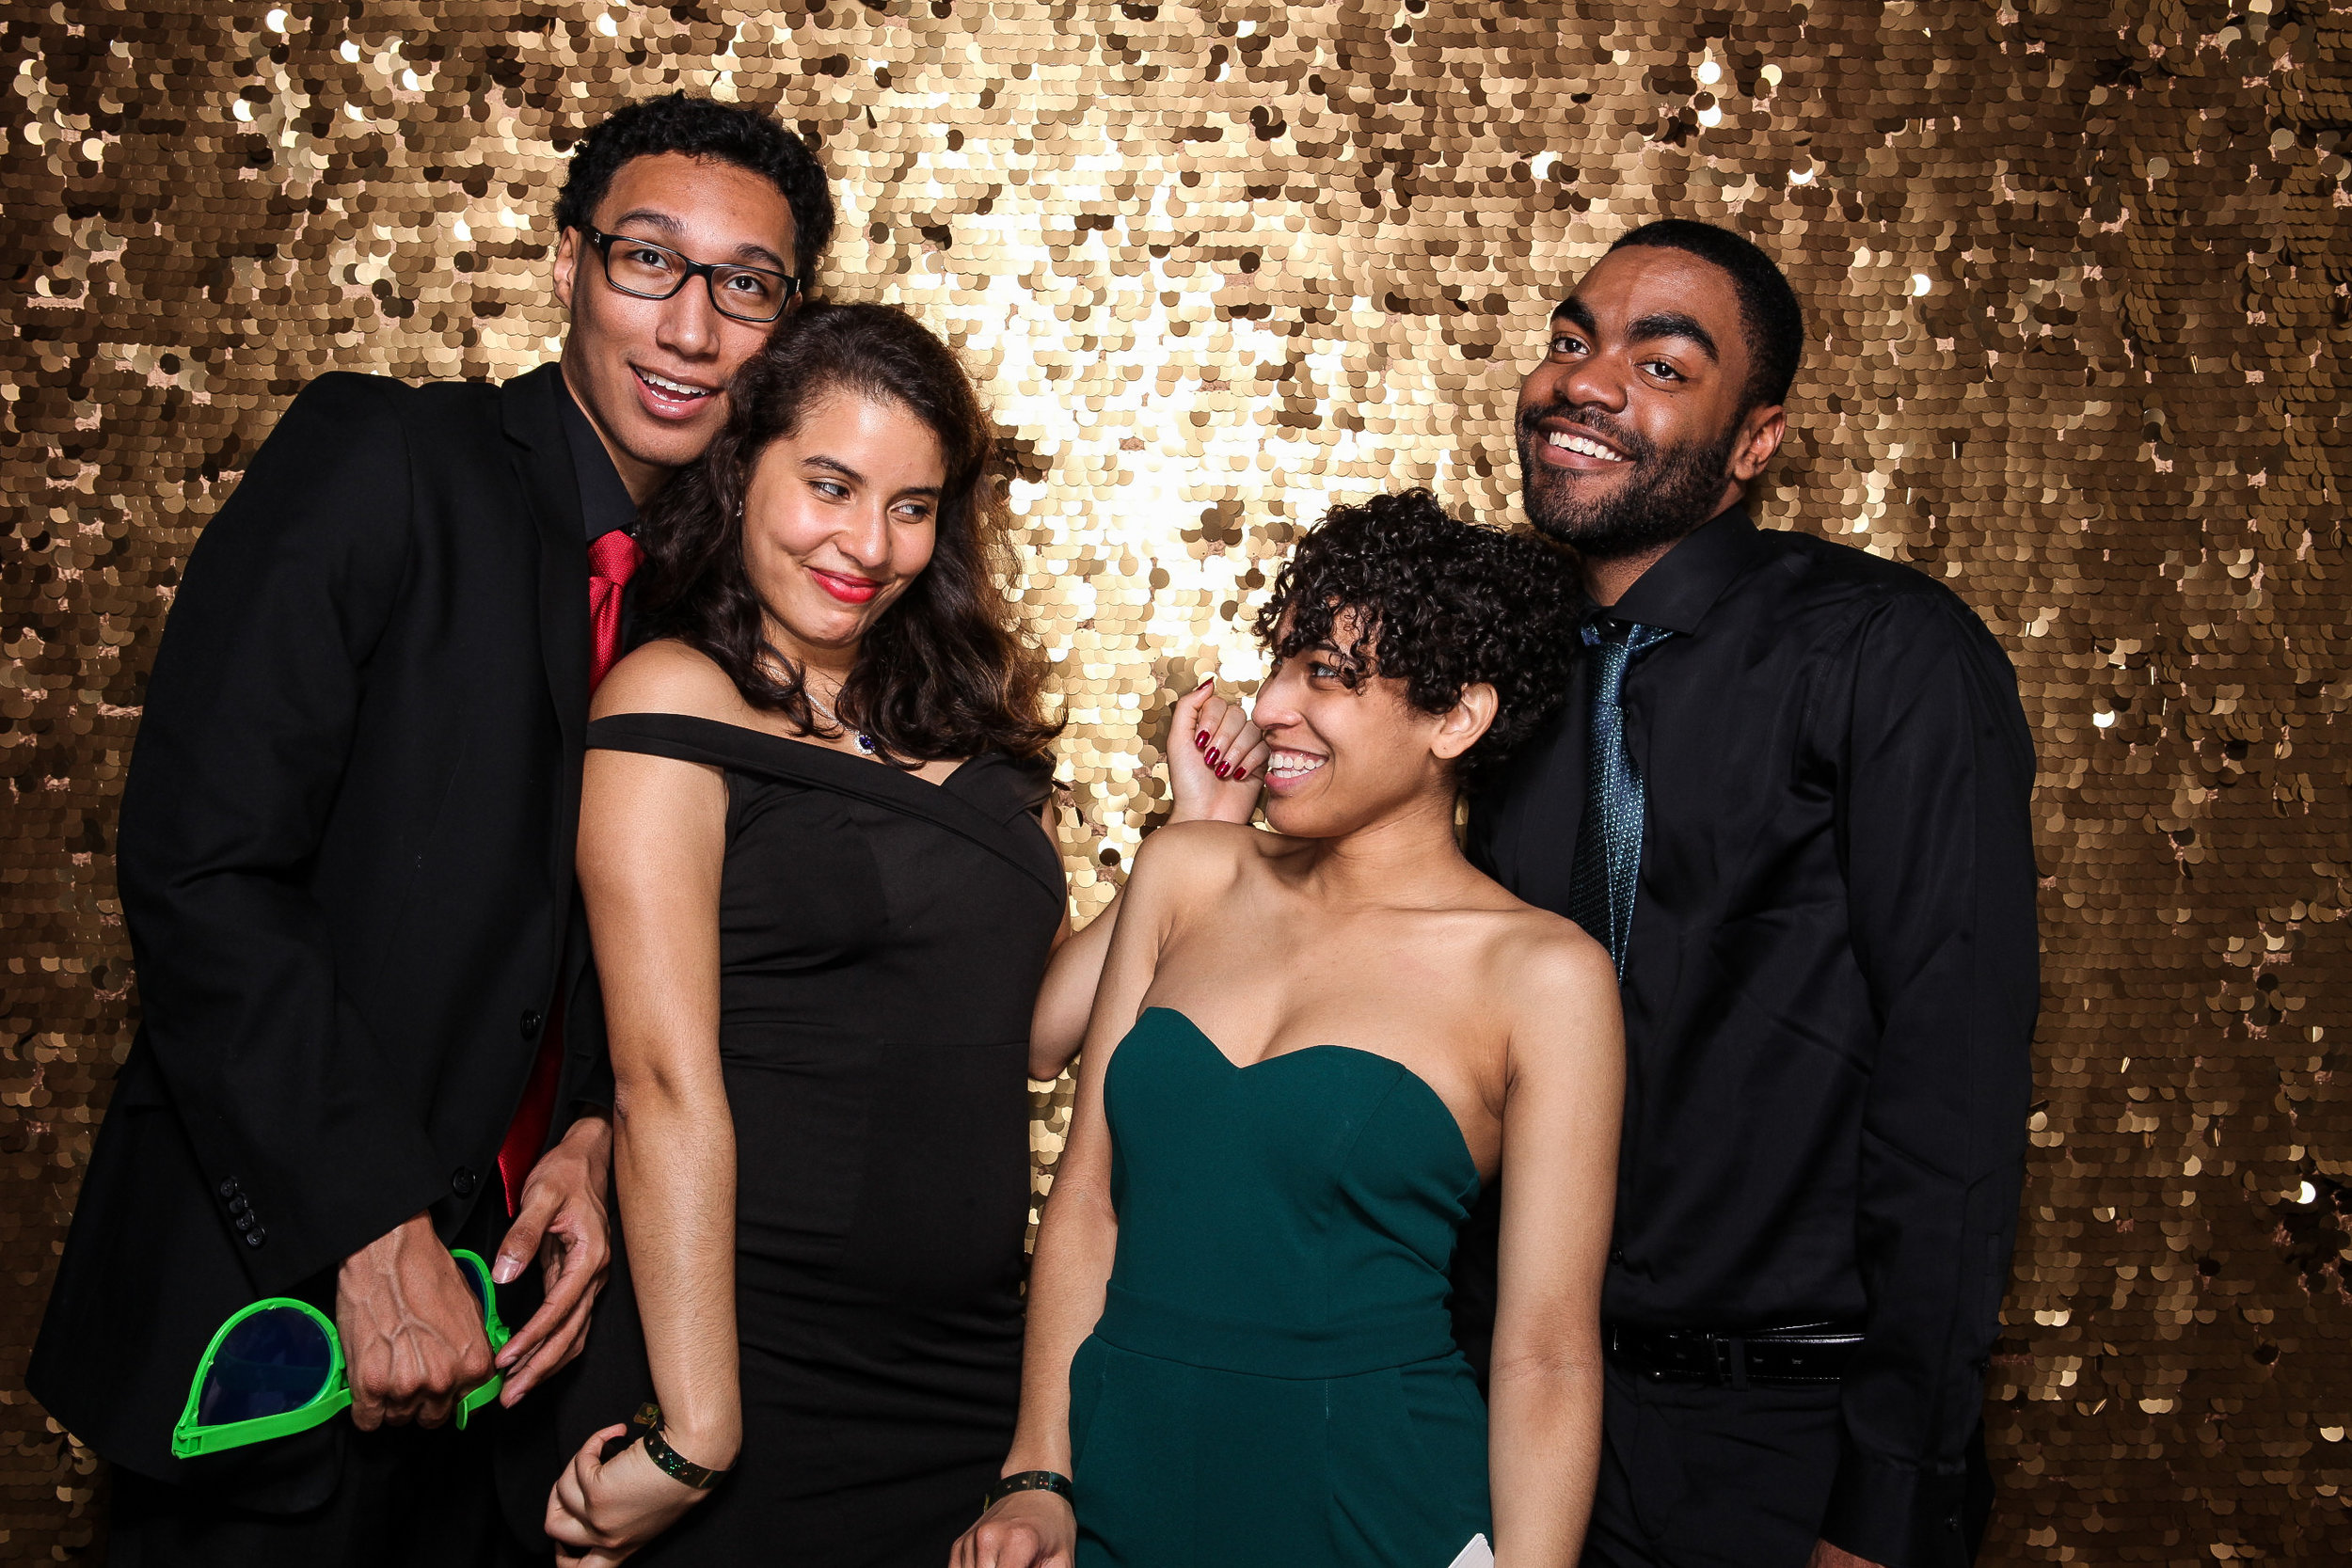 20190503_Adelphi_Senior_Formal-301.jpg